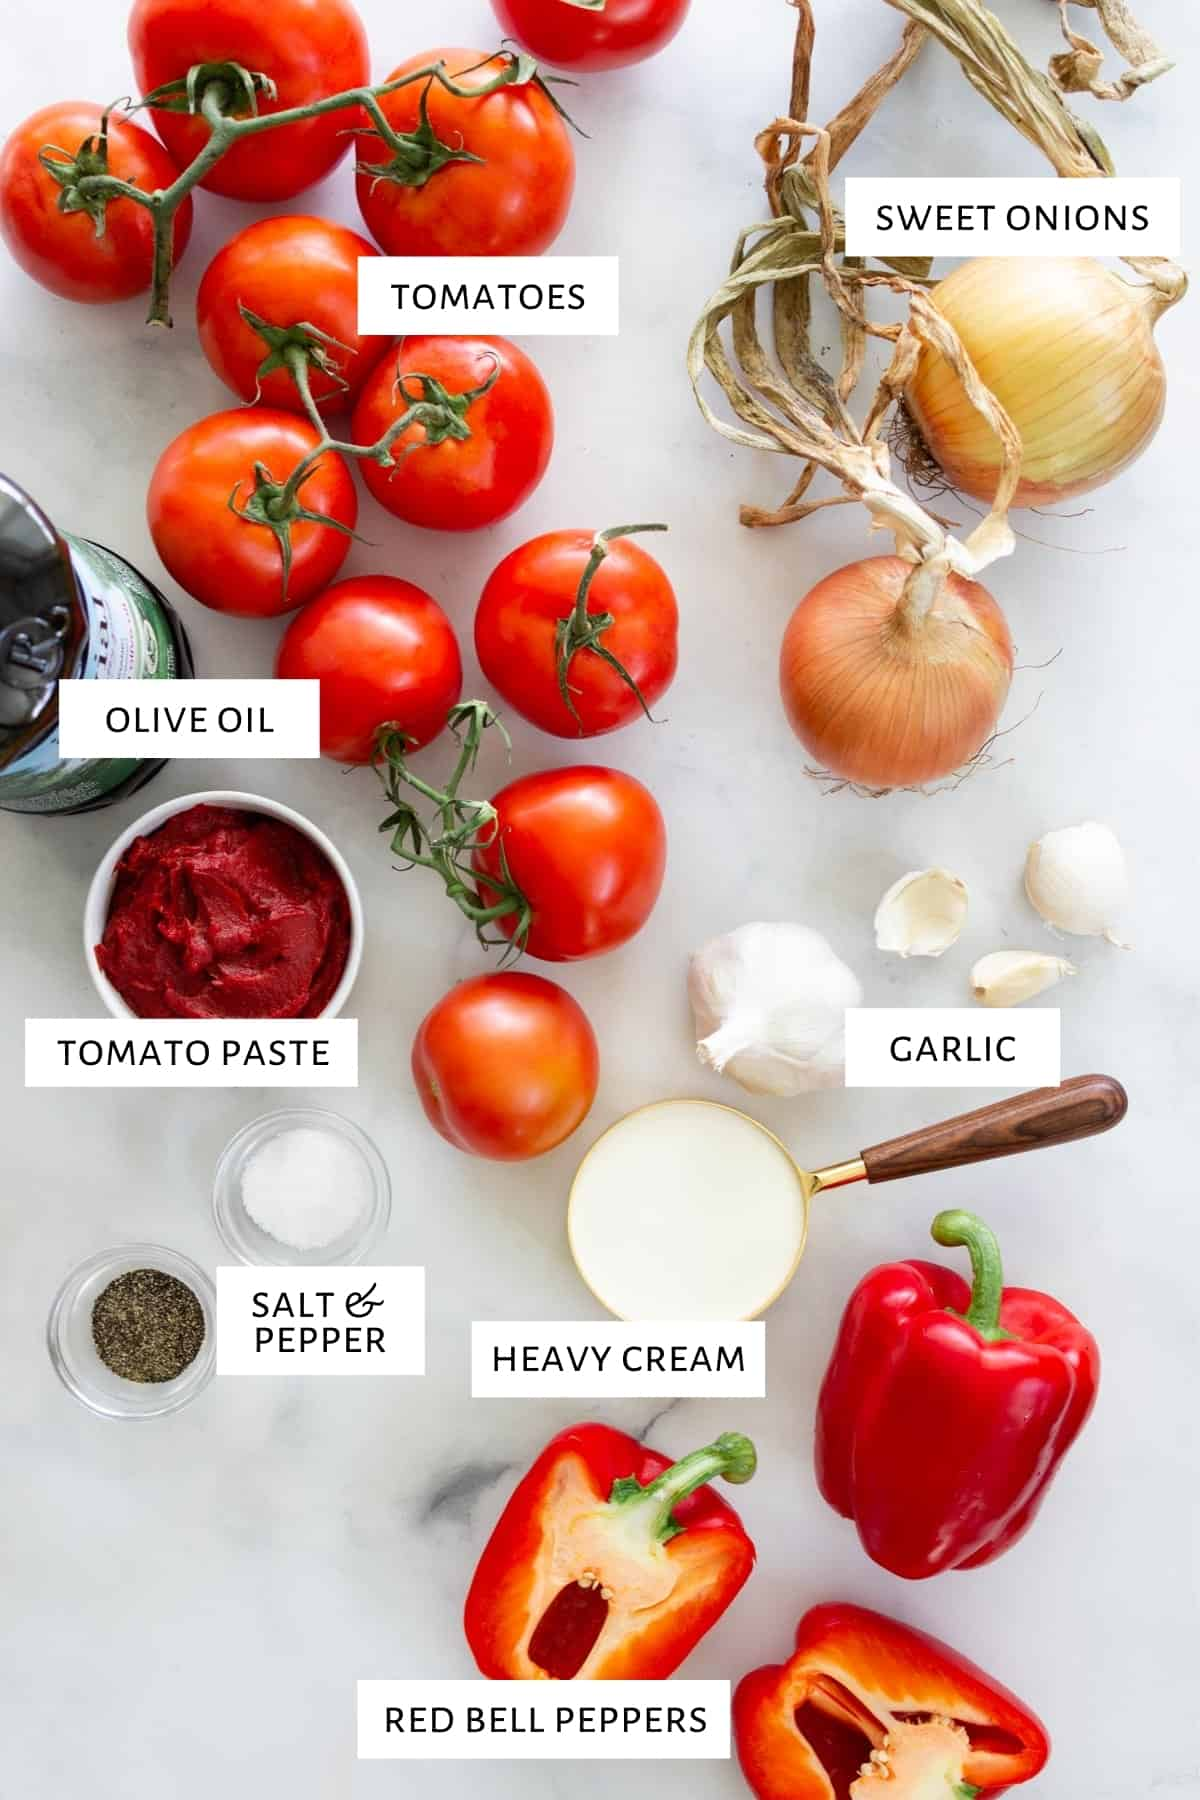 Ingredients to make roasted red pepper tomato basil soup are spread out on a marble countertop.